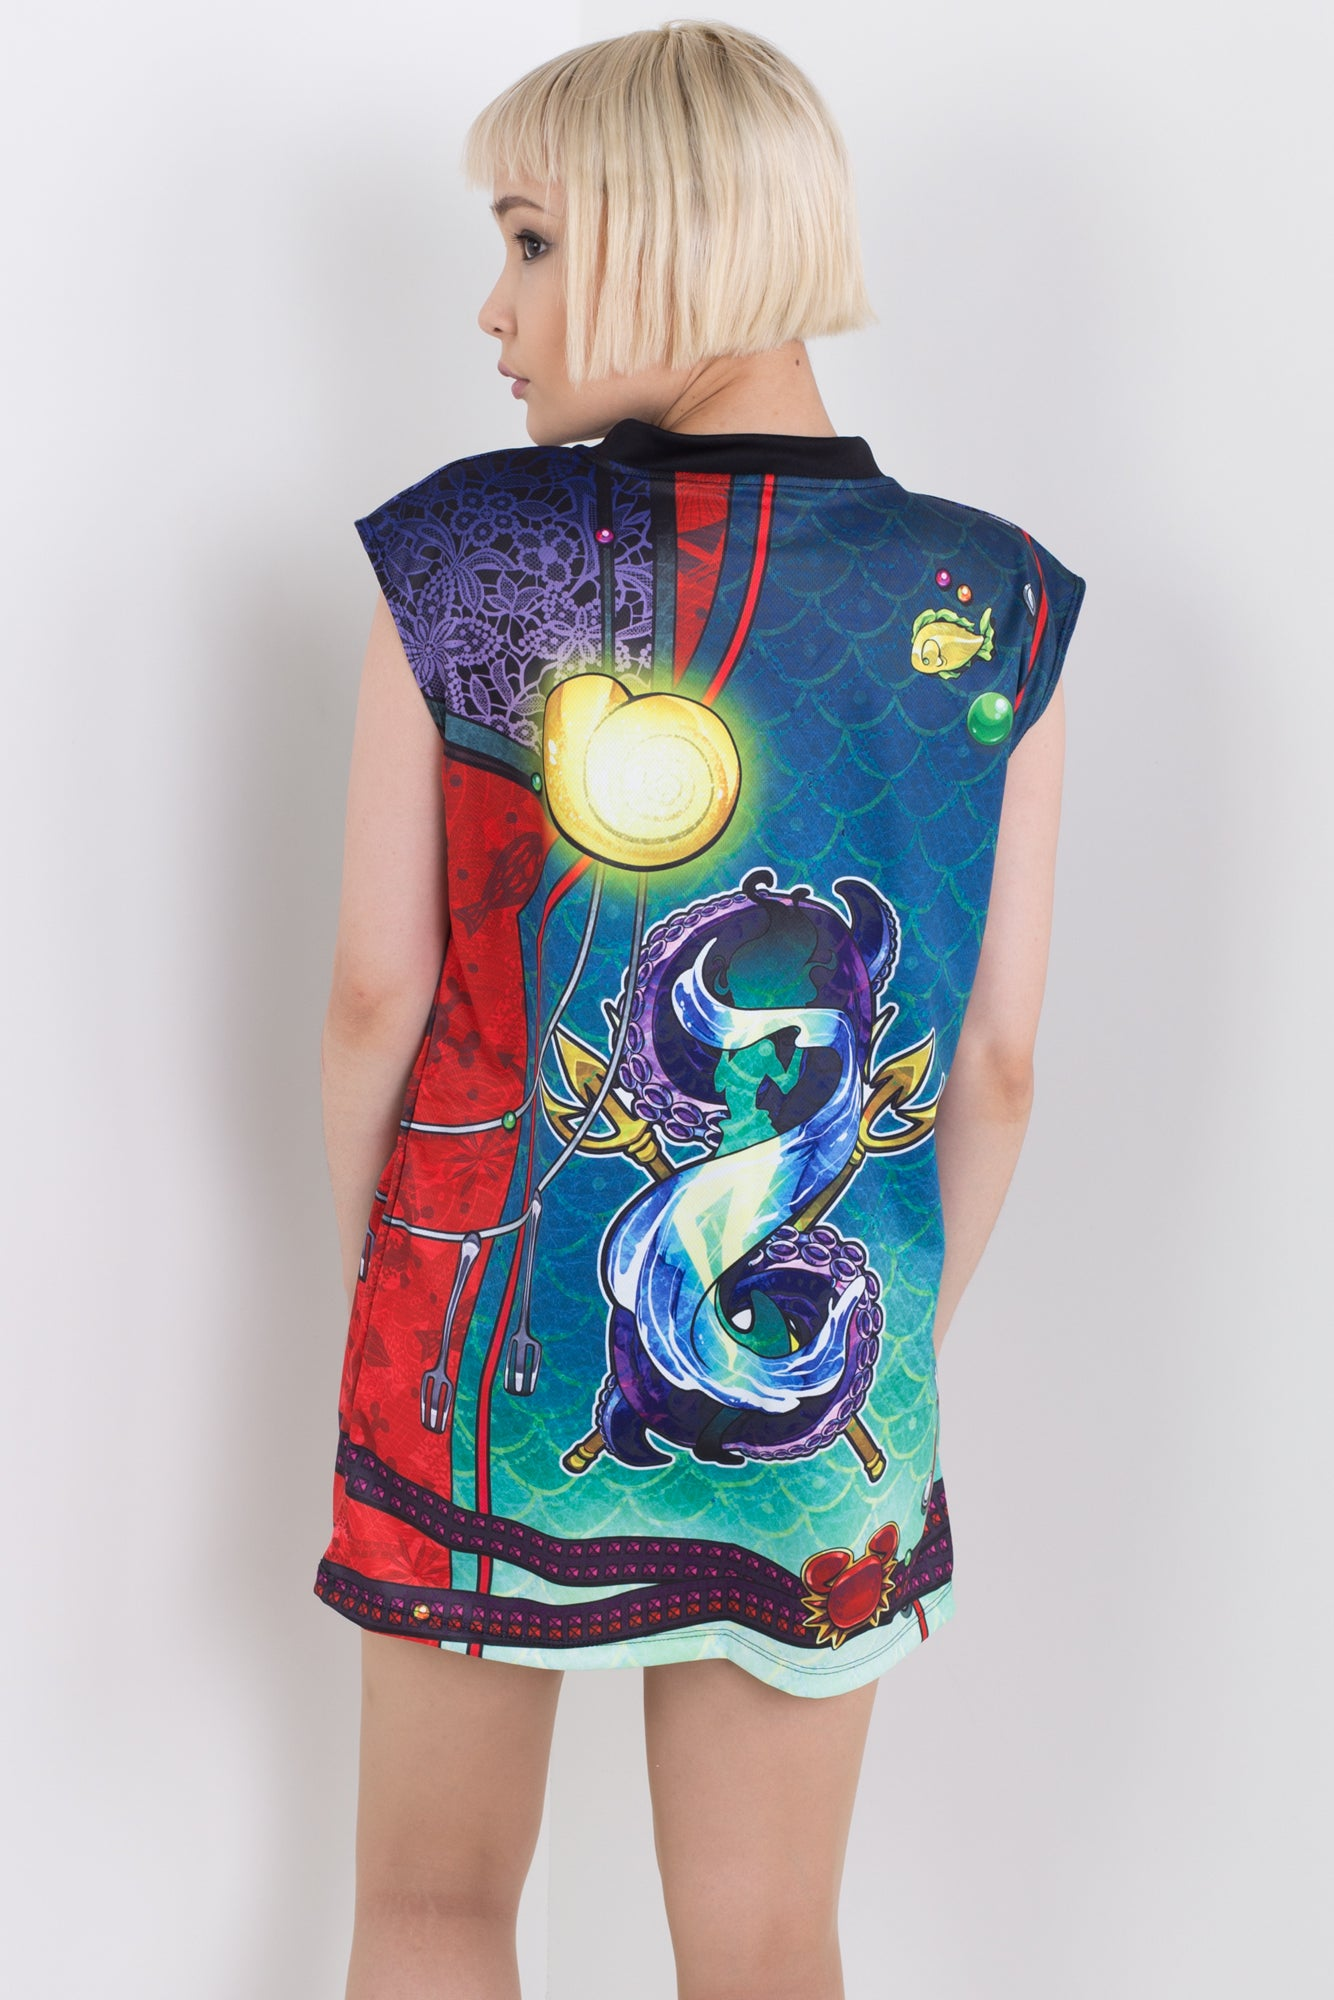 Punk Princess Ariel Sleeveless Hail Mary